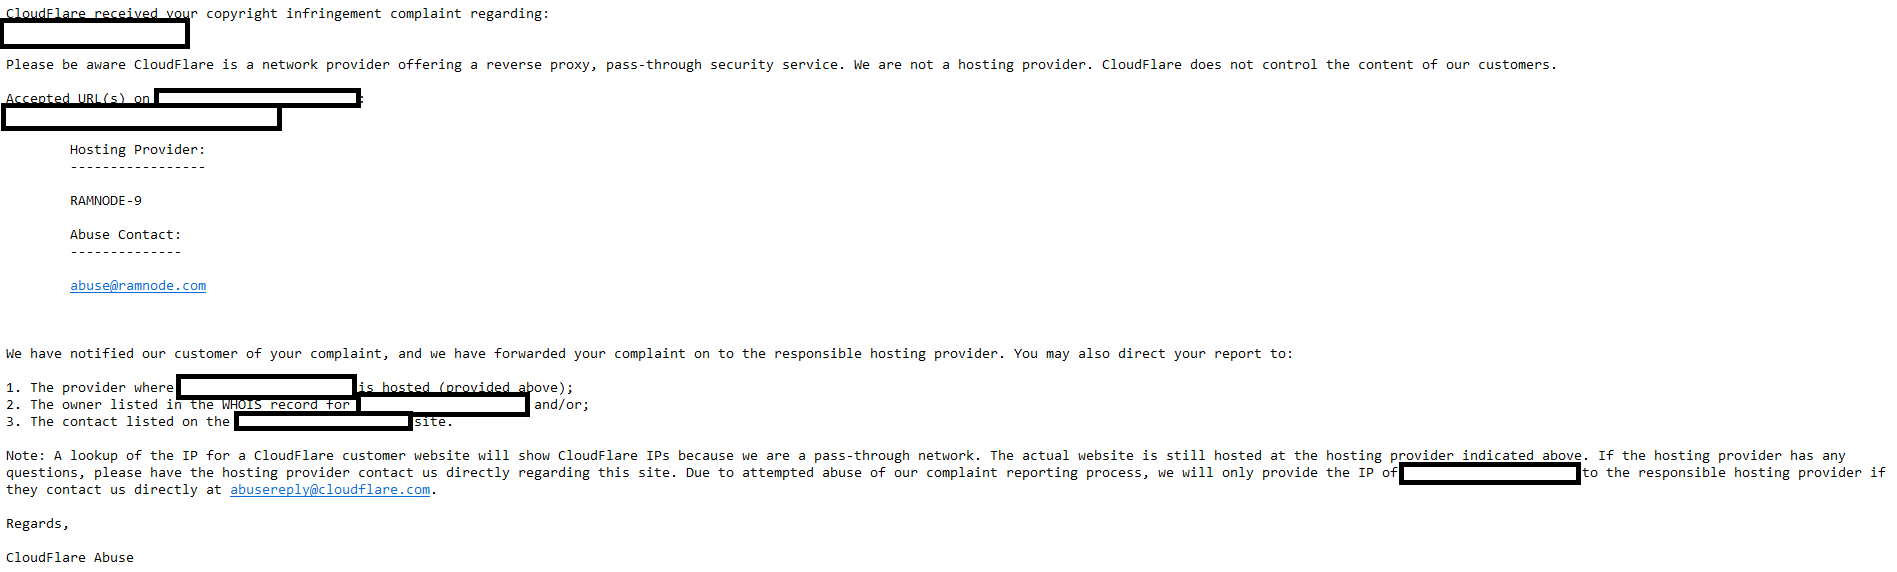 cloudflare response